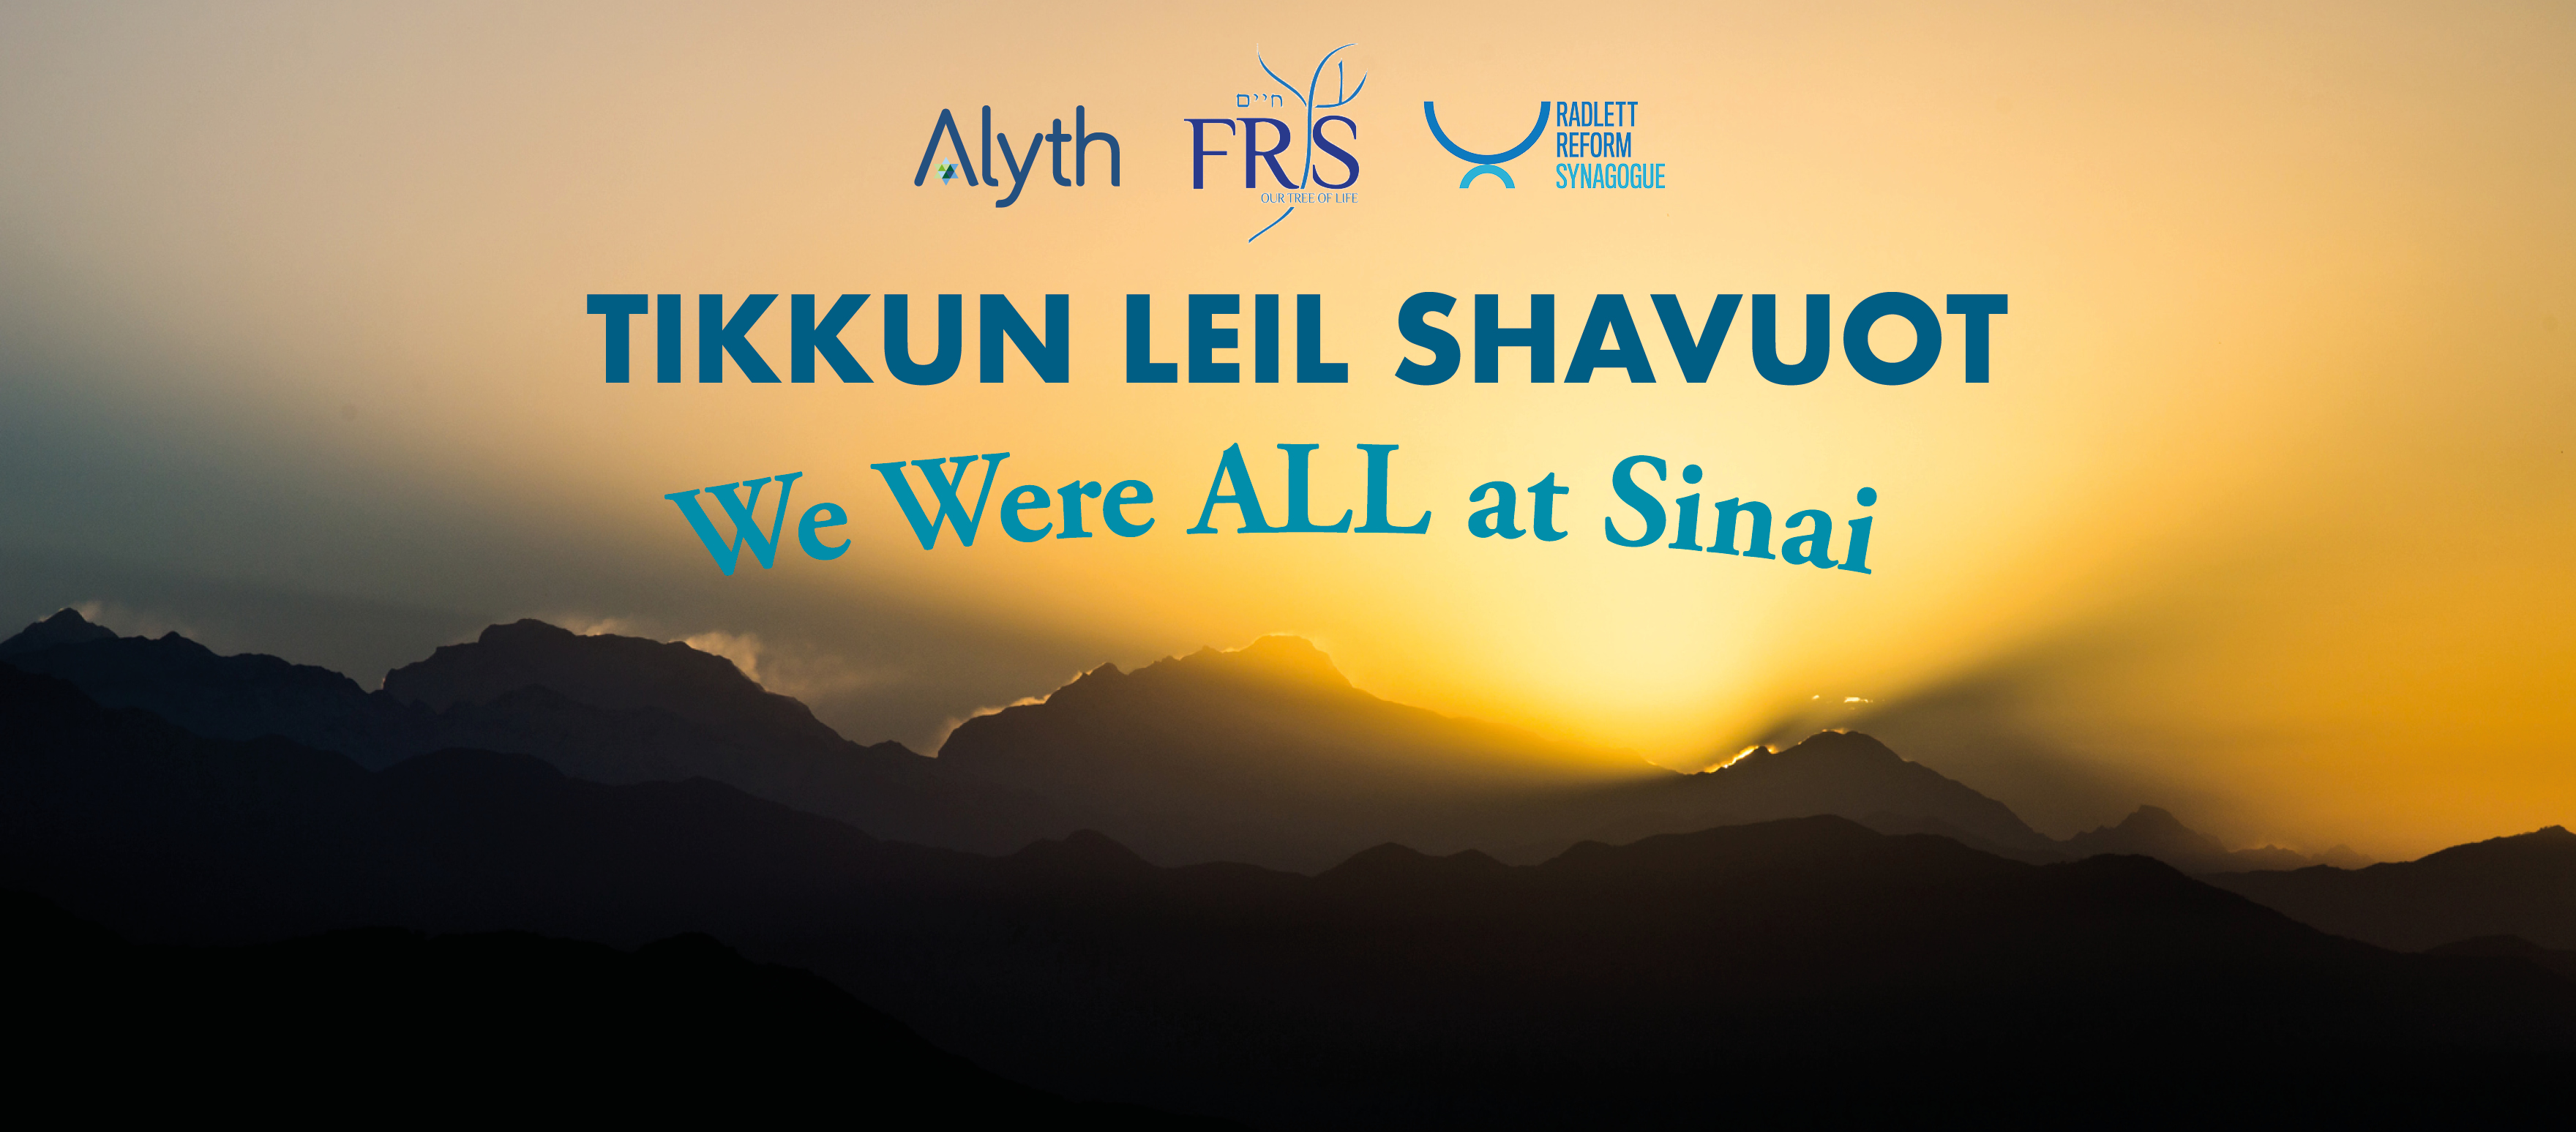 """<a href=""""https://www.frs.org.uk/allatsinai#""""                                     target="""""""">                                                                 <span class=""""slider_title"""">                                     Join us for Shavuot                                </span>                                                                 </a>                                                                                                                                                                                      <a href=""""https://www.frs.org.uk/allatsinai#"""" class=""""slider_link""""                             target="""""""">                             Find out more                            </a>"""